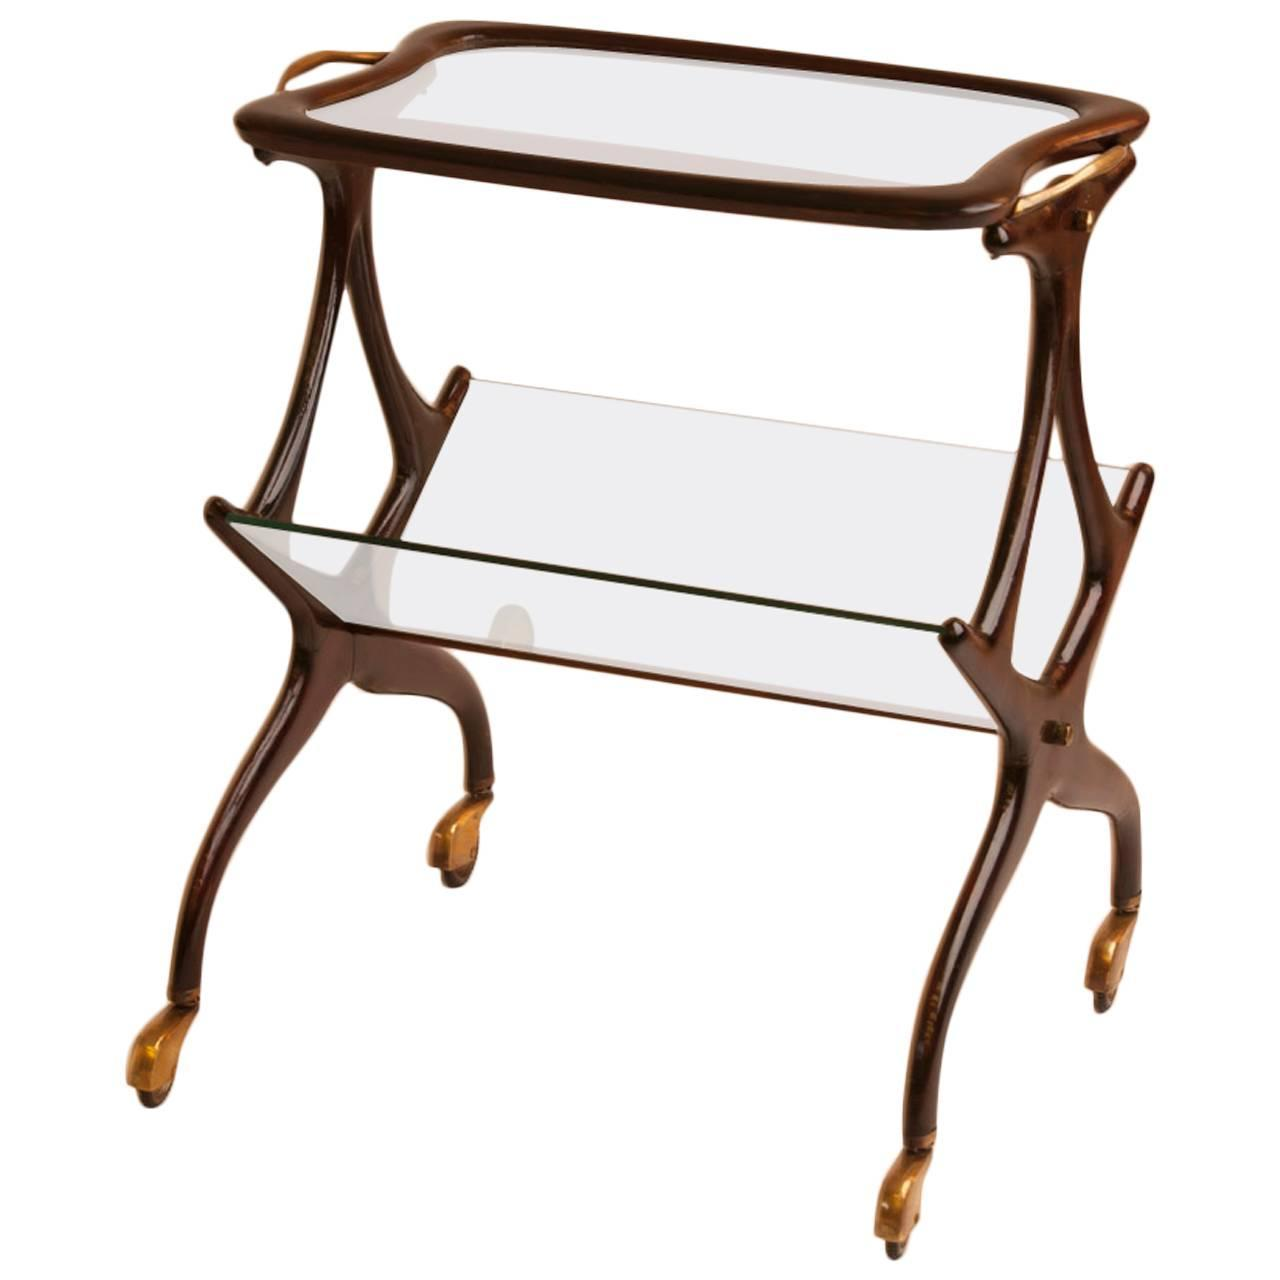 Wonderful image of Italian Magazine Rack/Side Table at 1stdibs with #9C642F color and 1280x1280 pixels